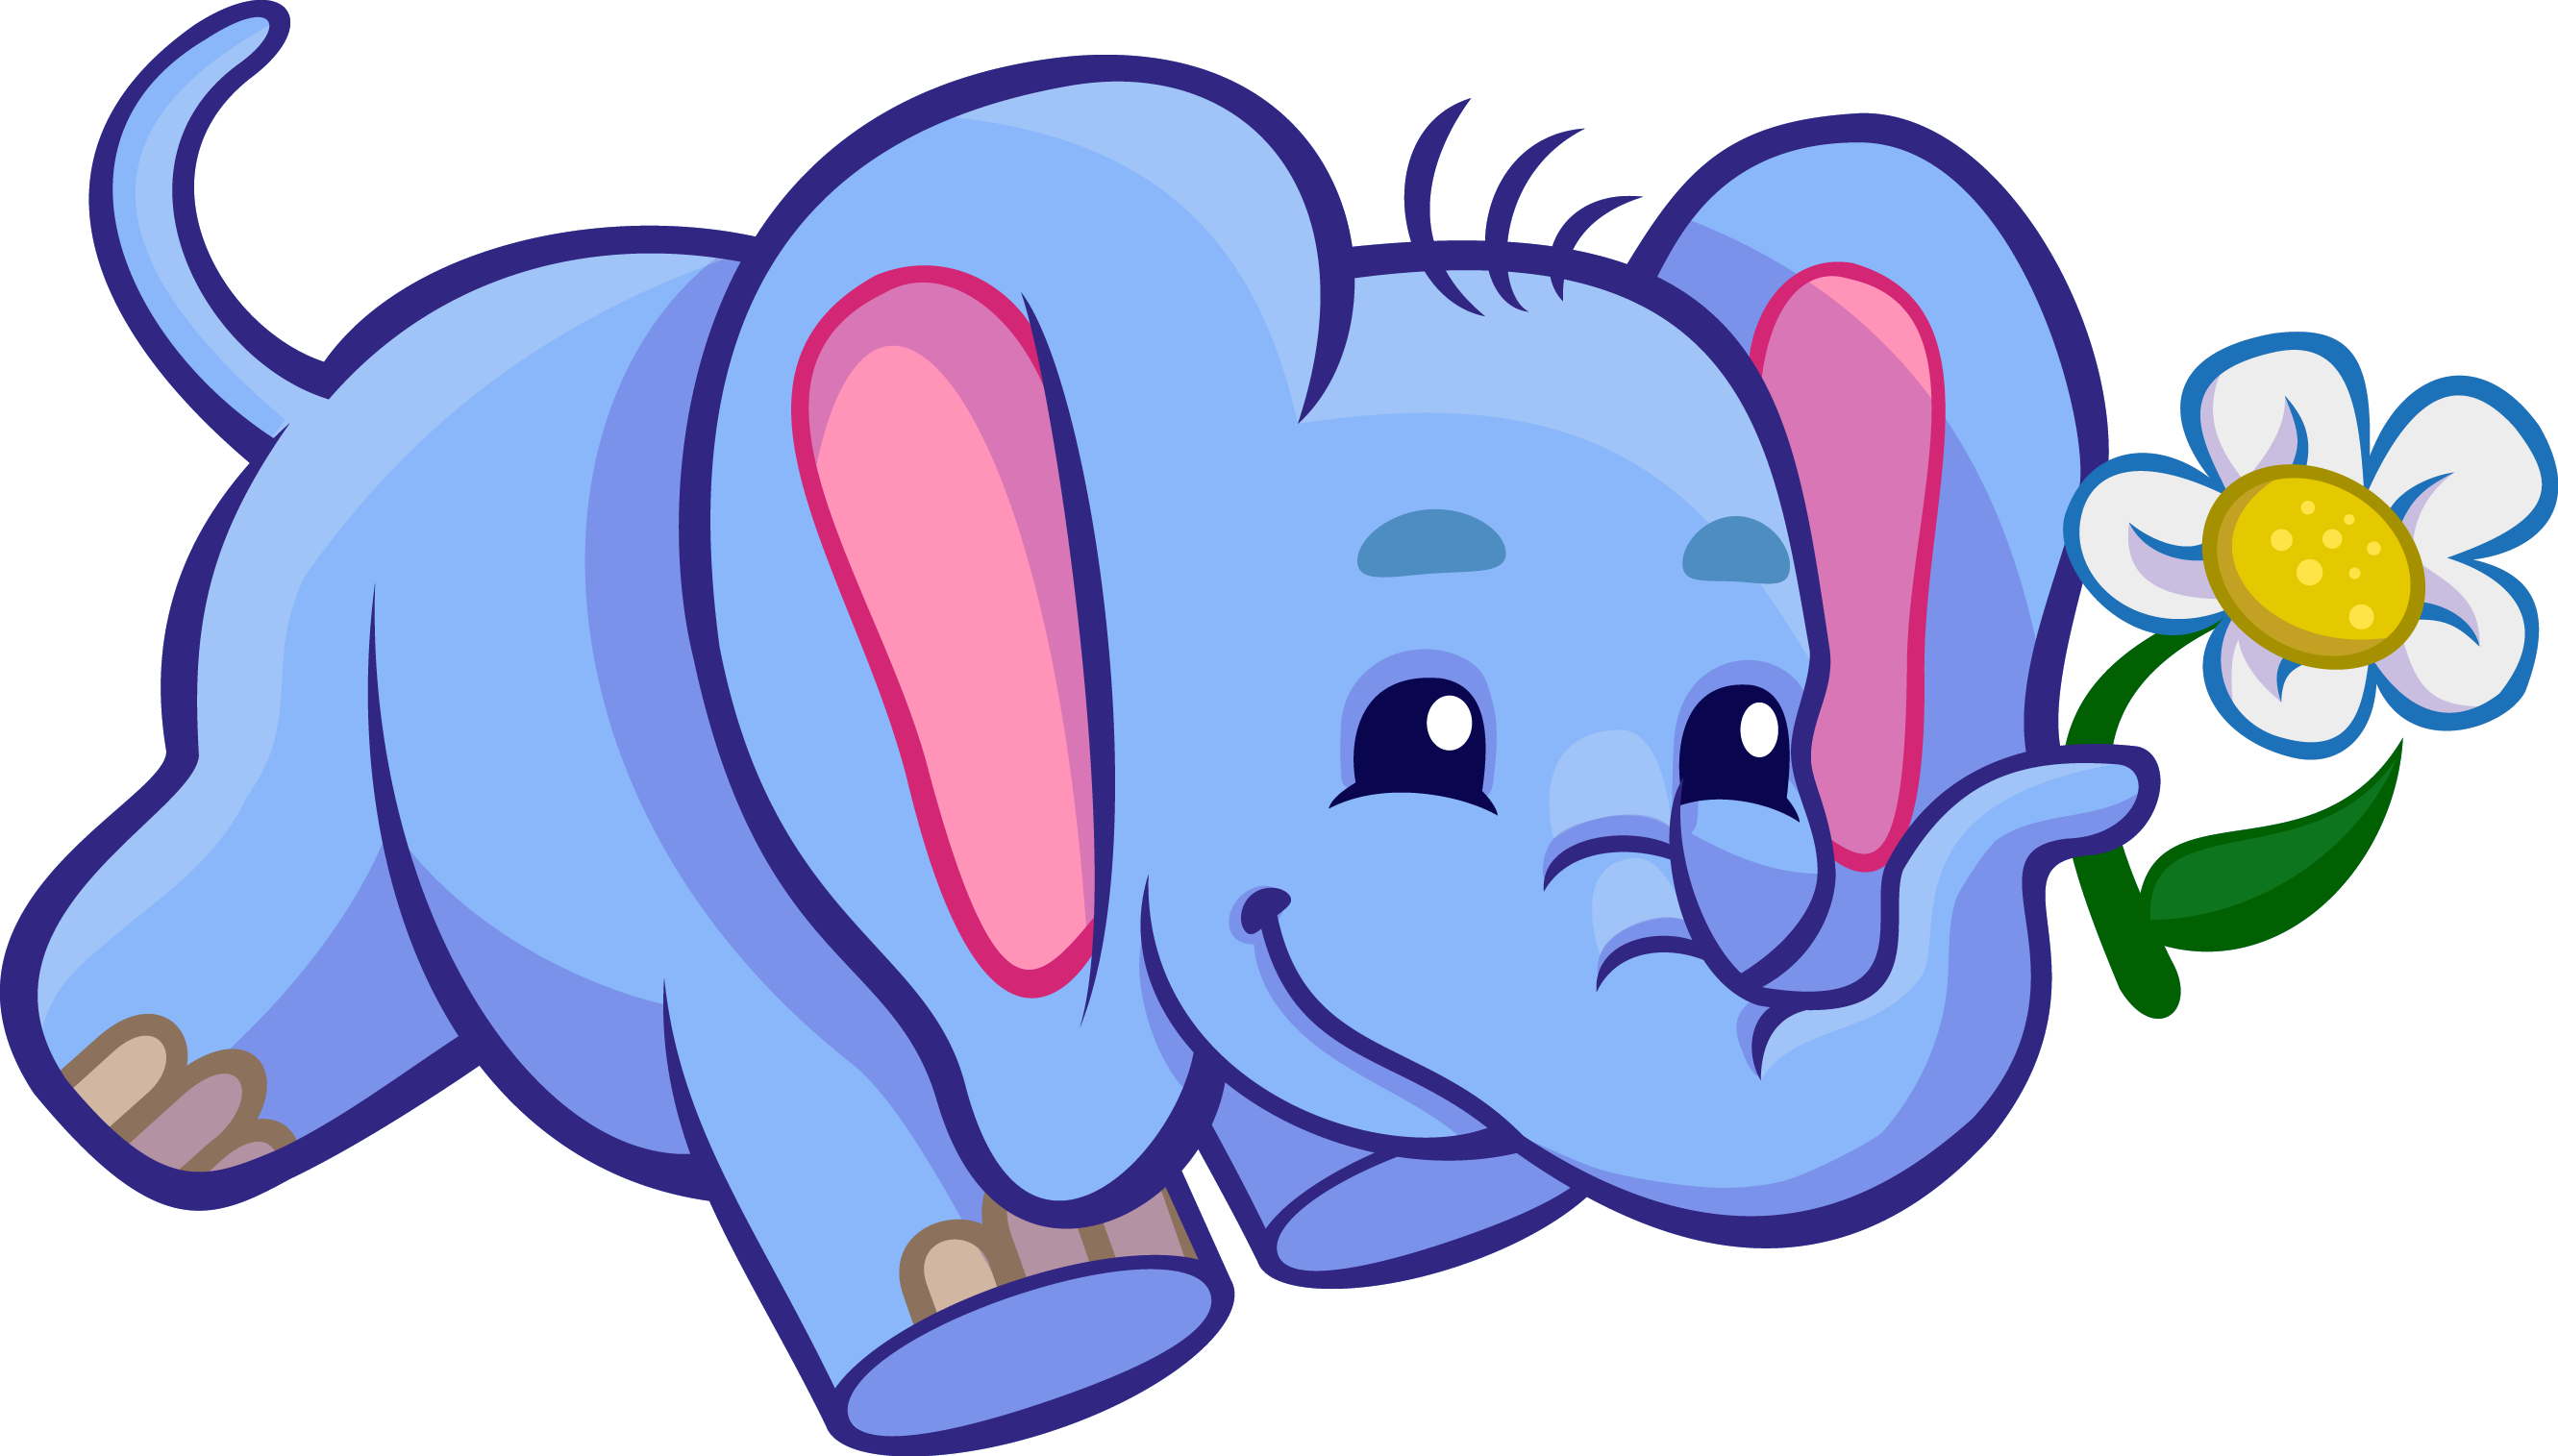 2661x1515 Baby Elephant Clipart Images And Pictures